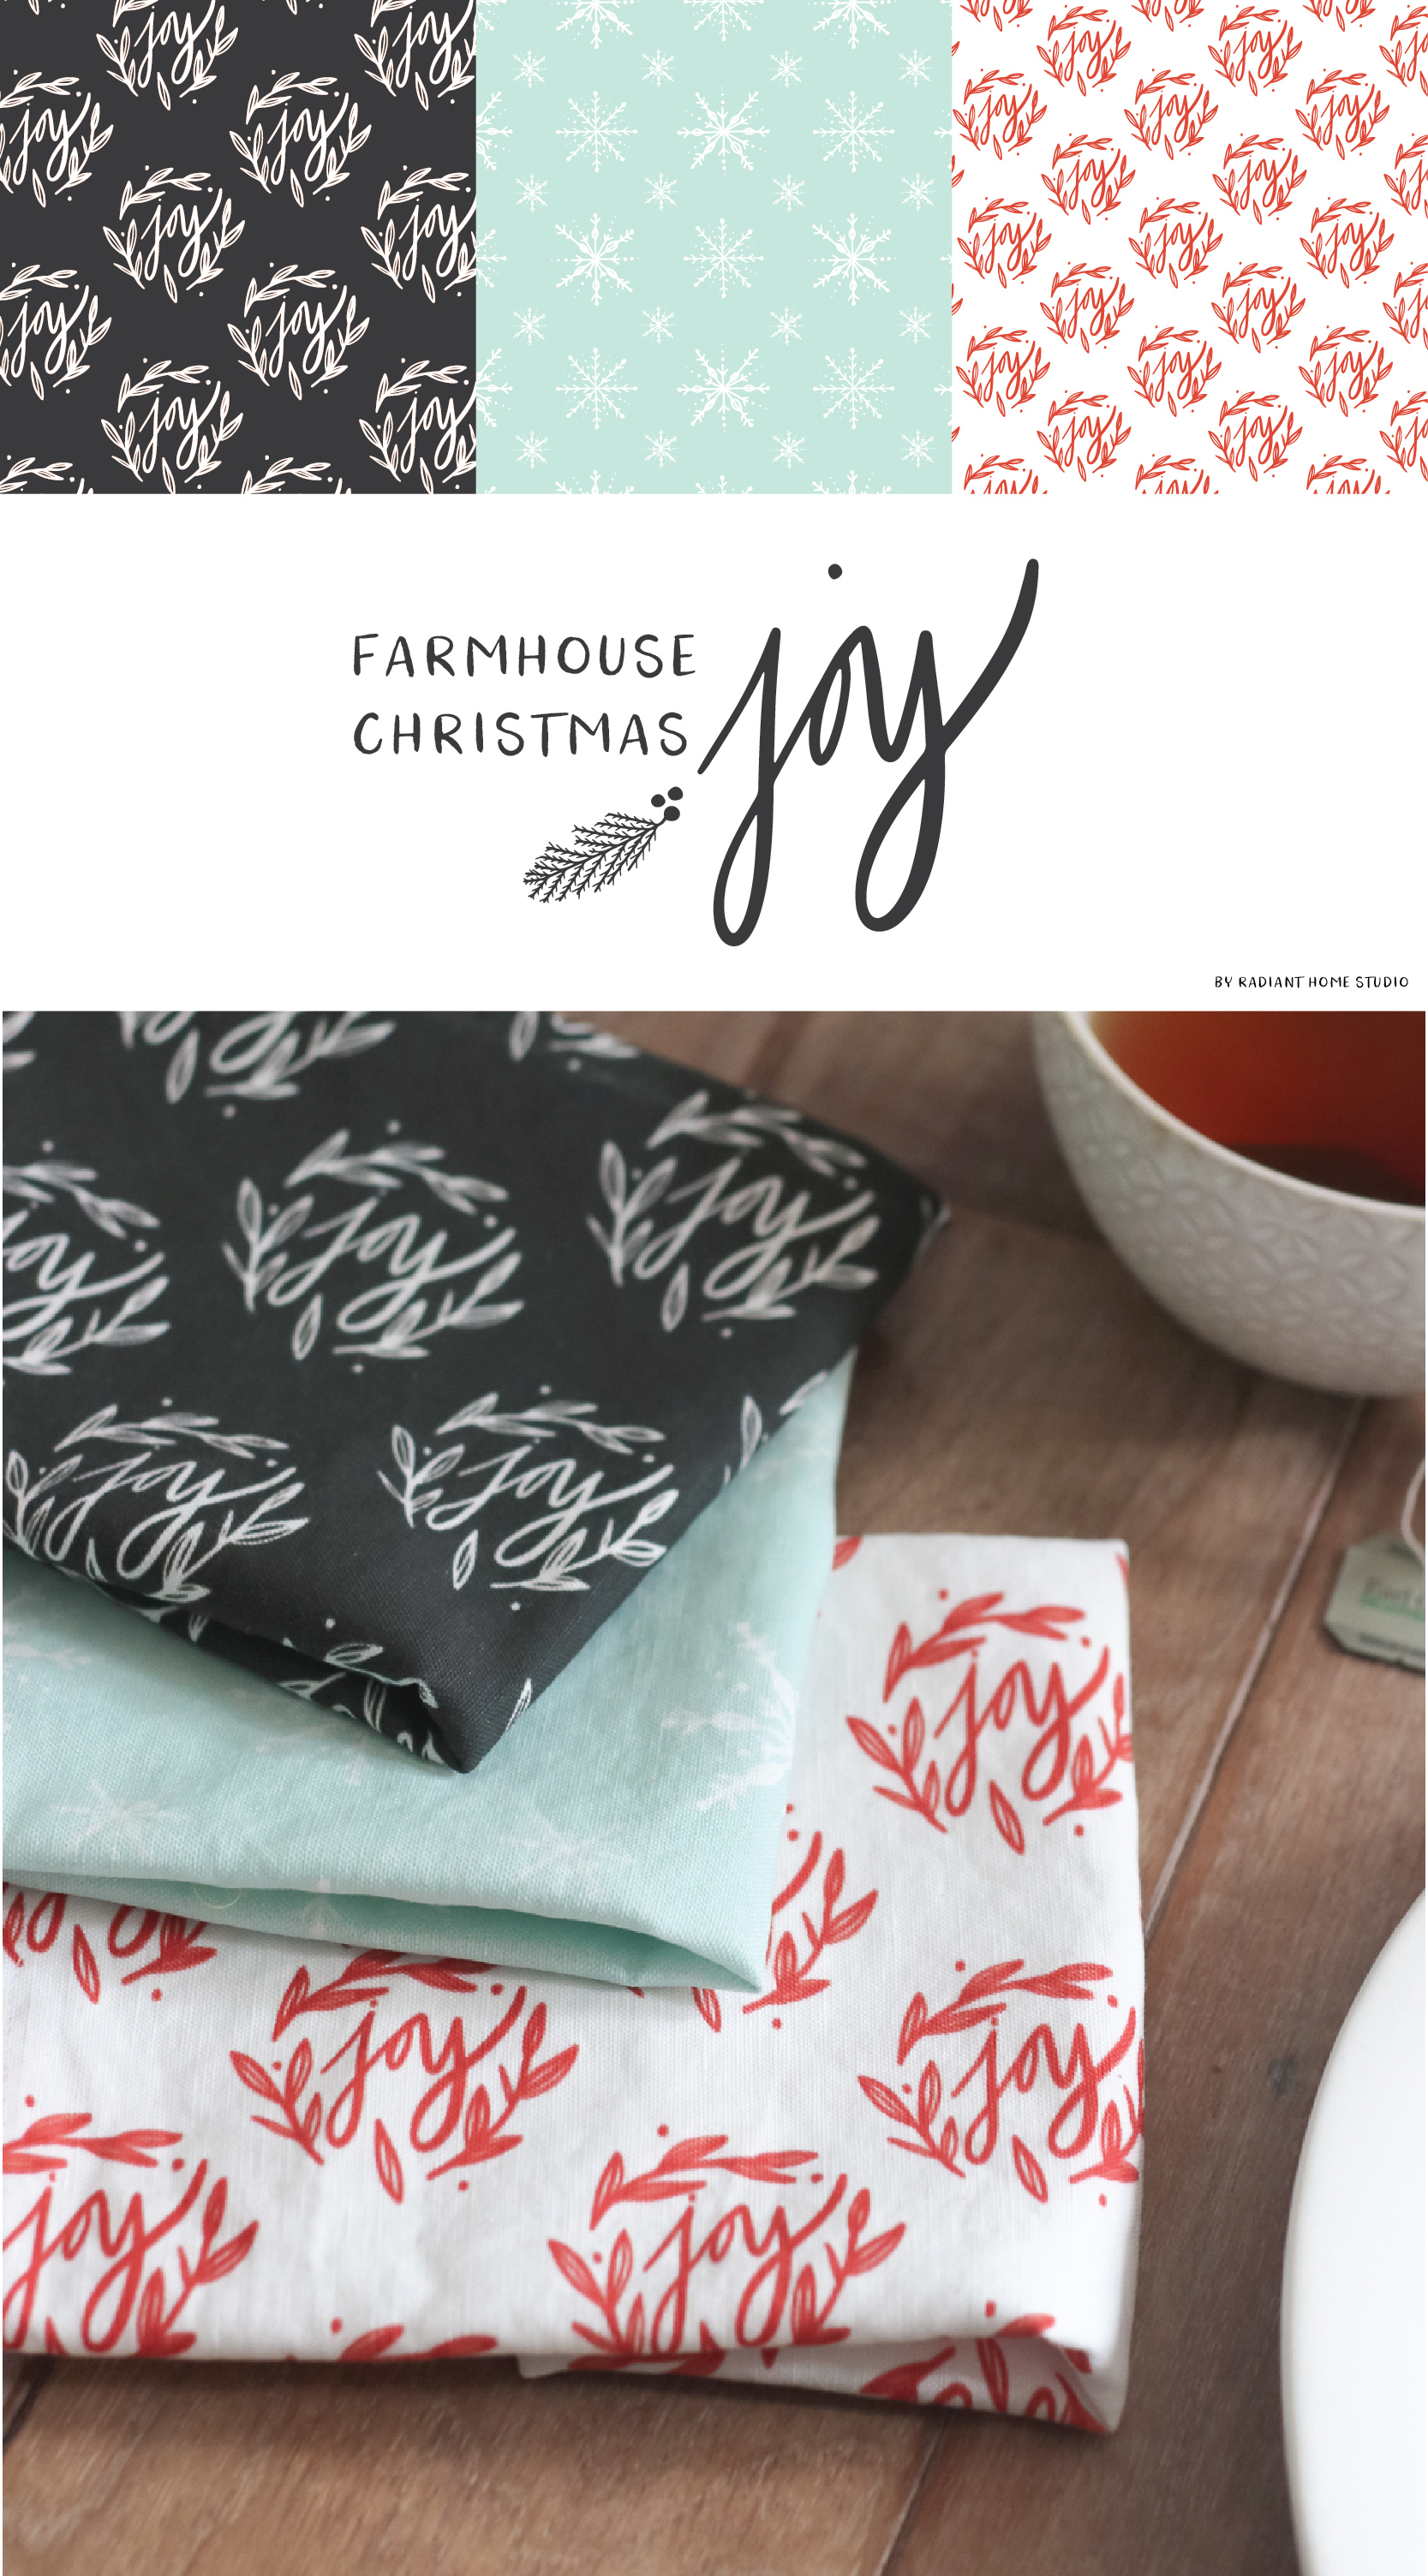 Farmhouse Christmas Joy fabric collection & tea towels for holiday decor | by Radiant Home Studio on Spoonflower